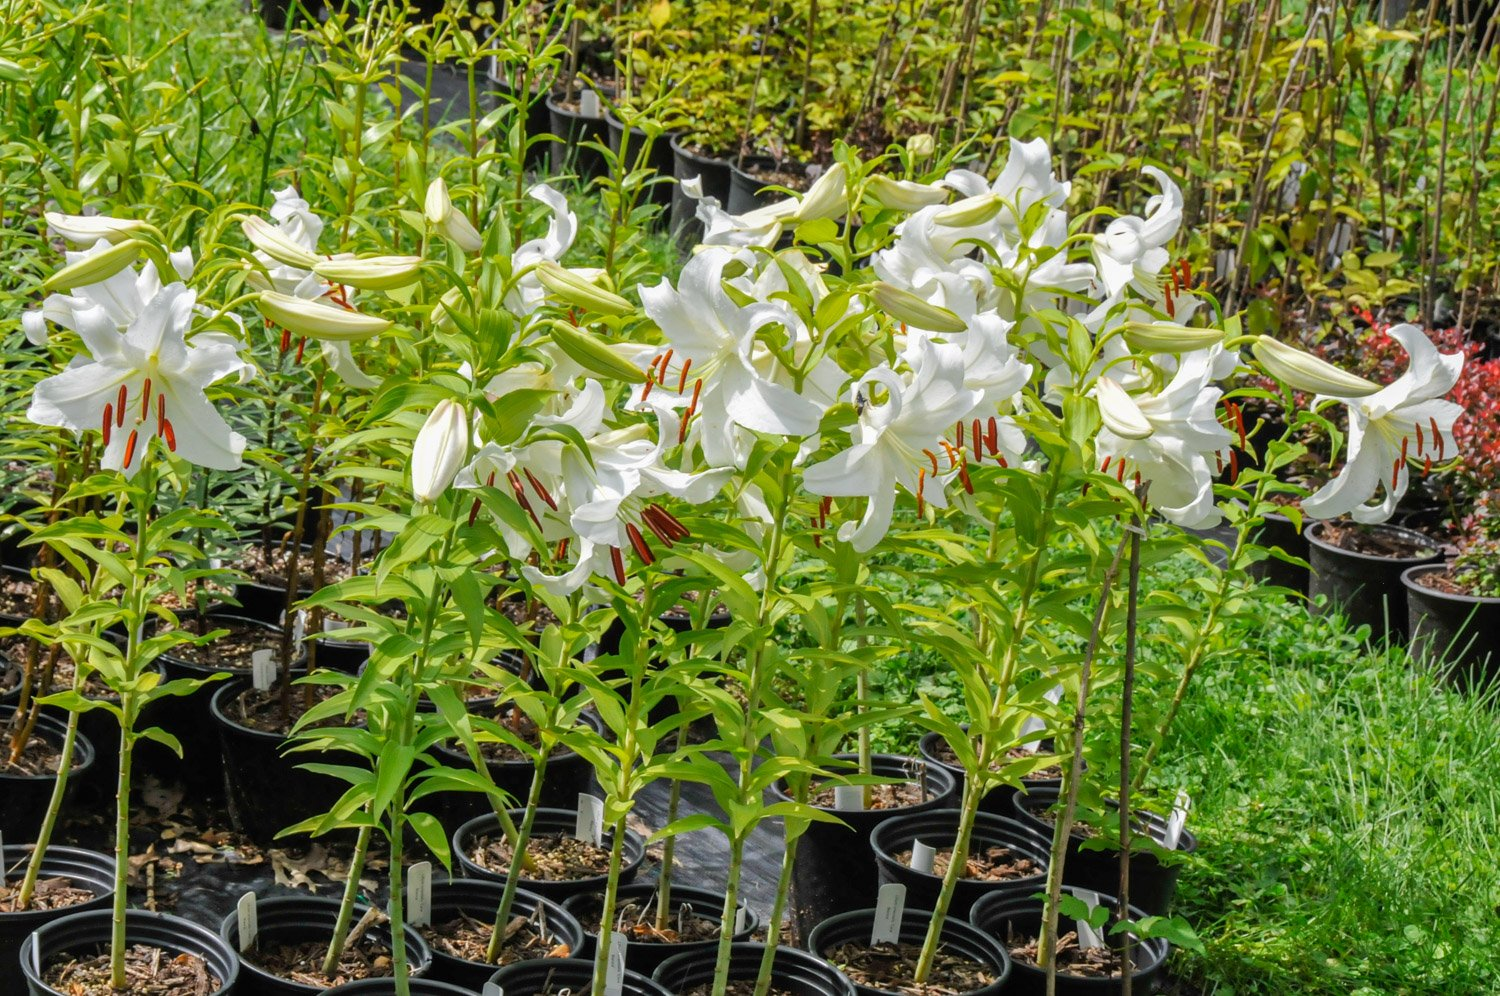 Group of potted Oriental Lilies, 'Casa Blanca' in buds and blooms